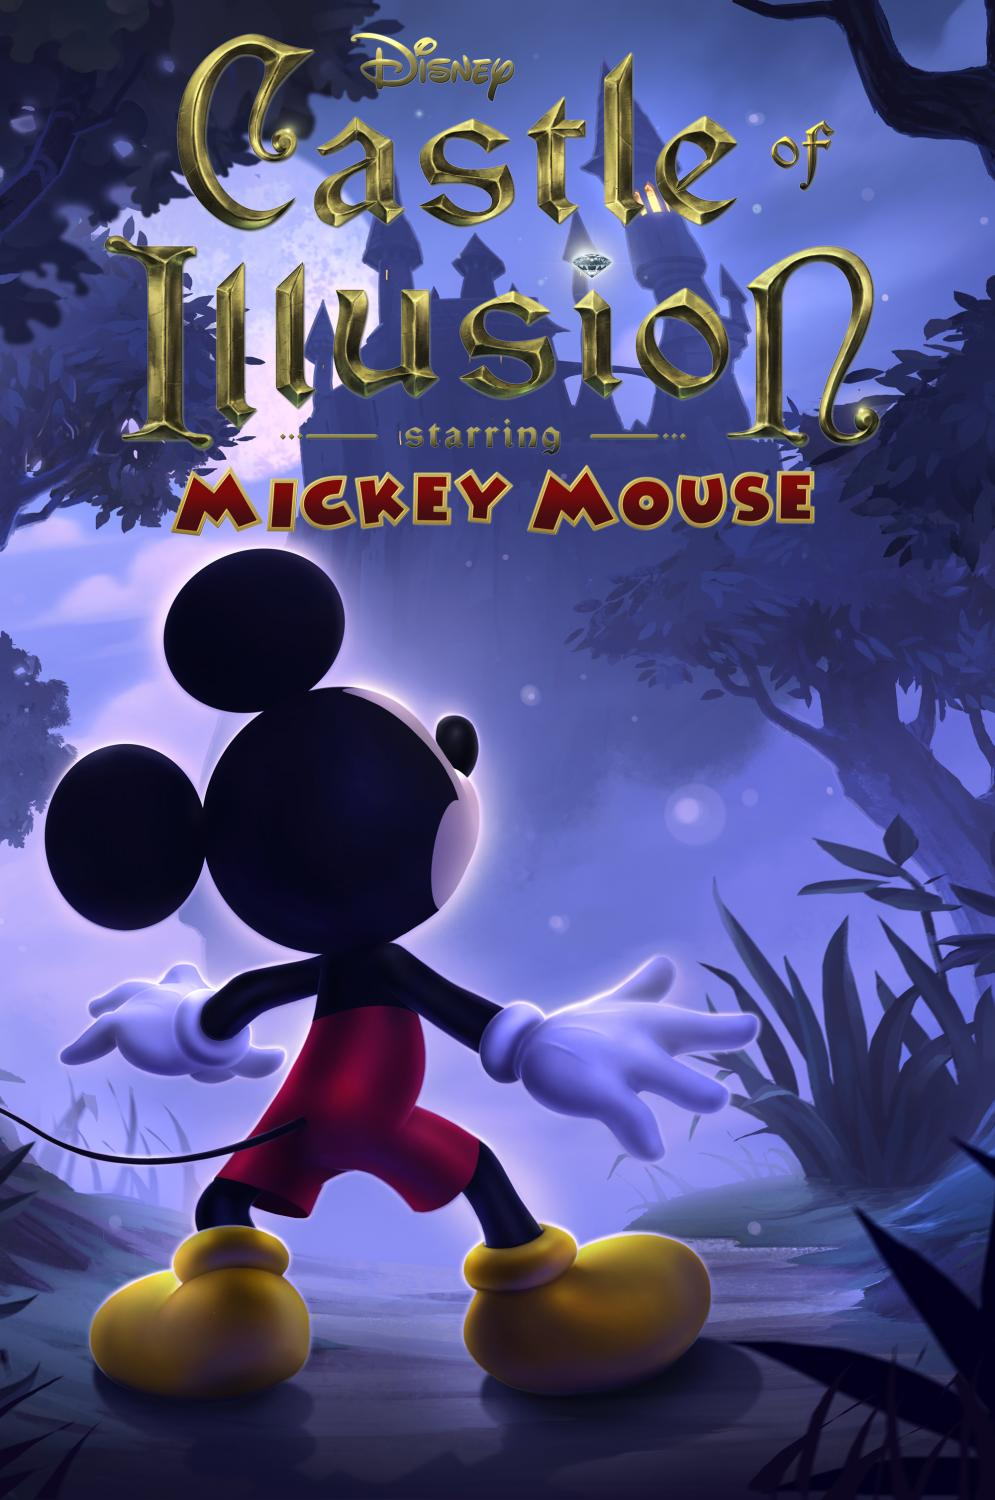 Games: Castle of Illusion Starring MickeyMouse